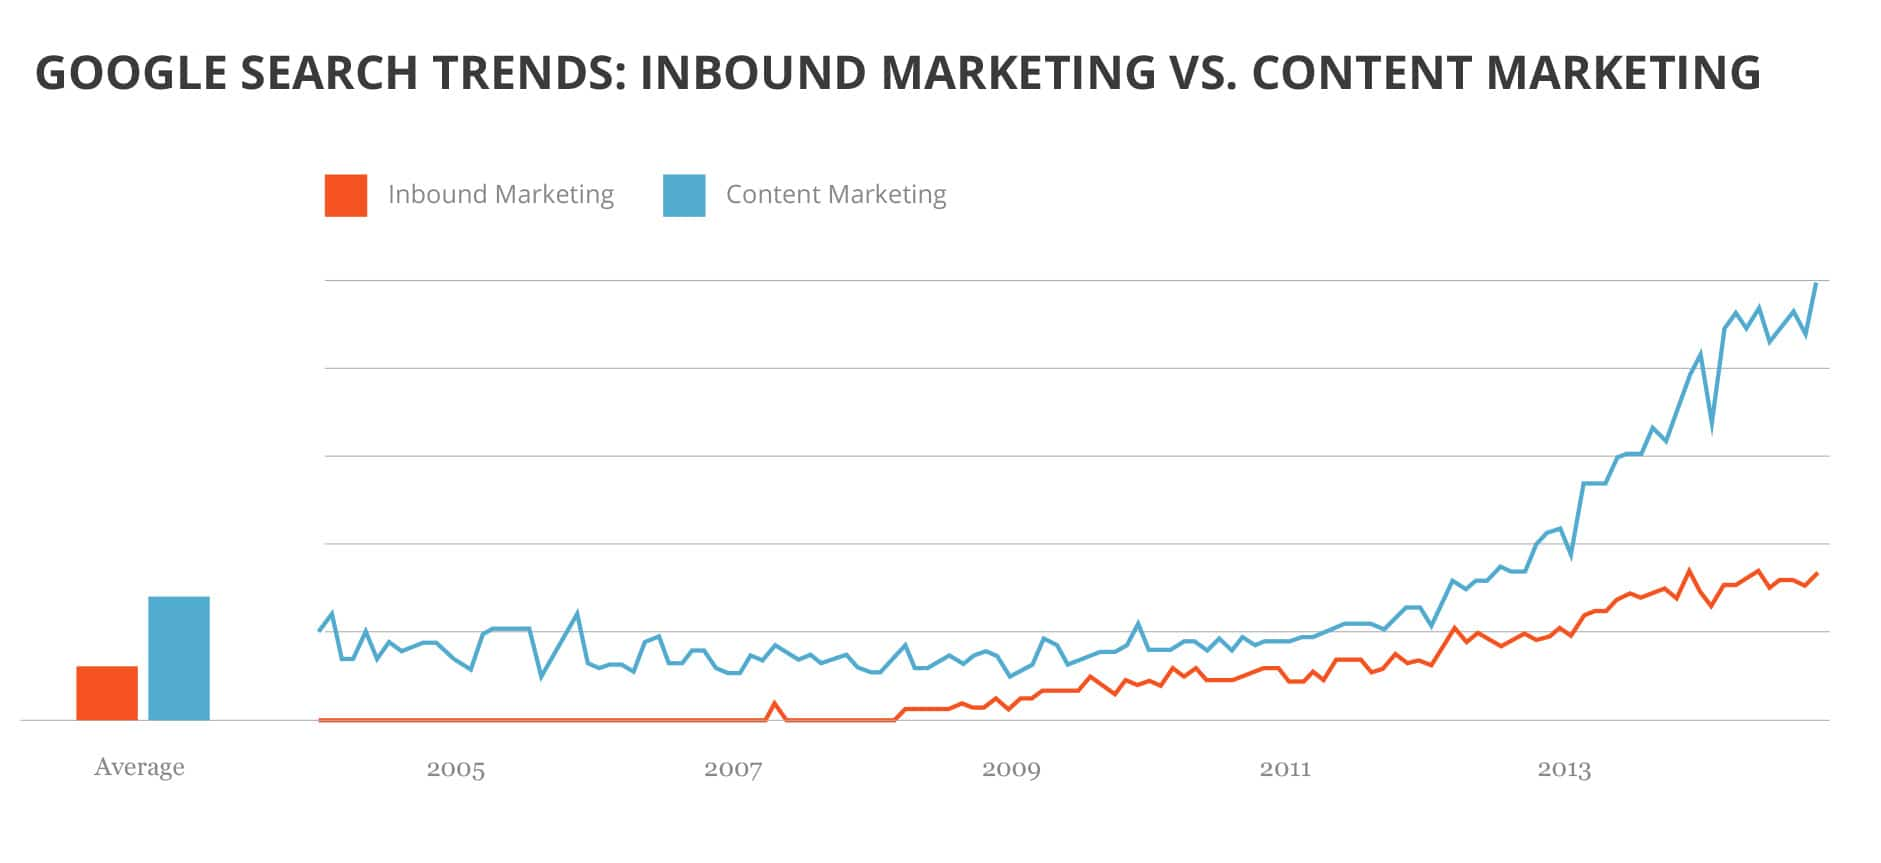 Google Search Trends for Inbound Marketing vs Content Marketing